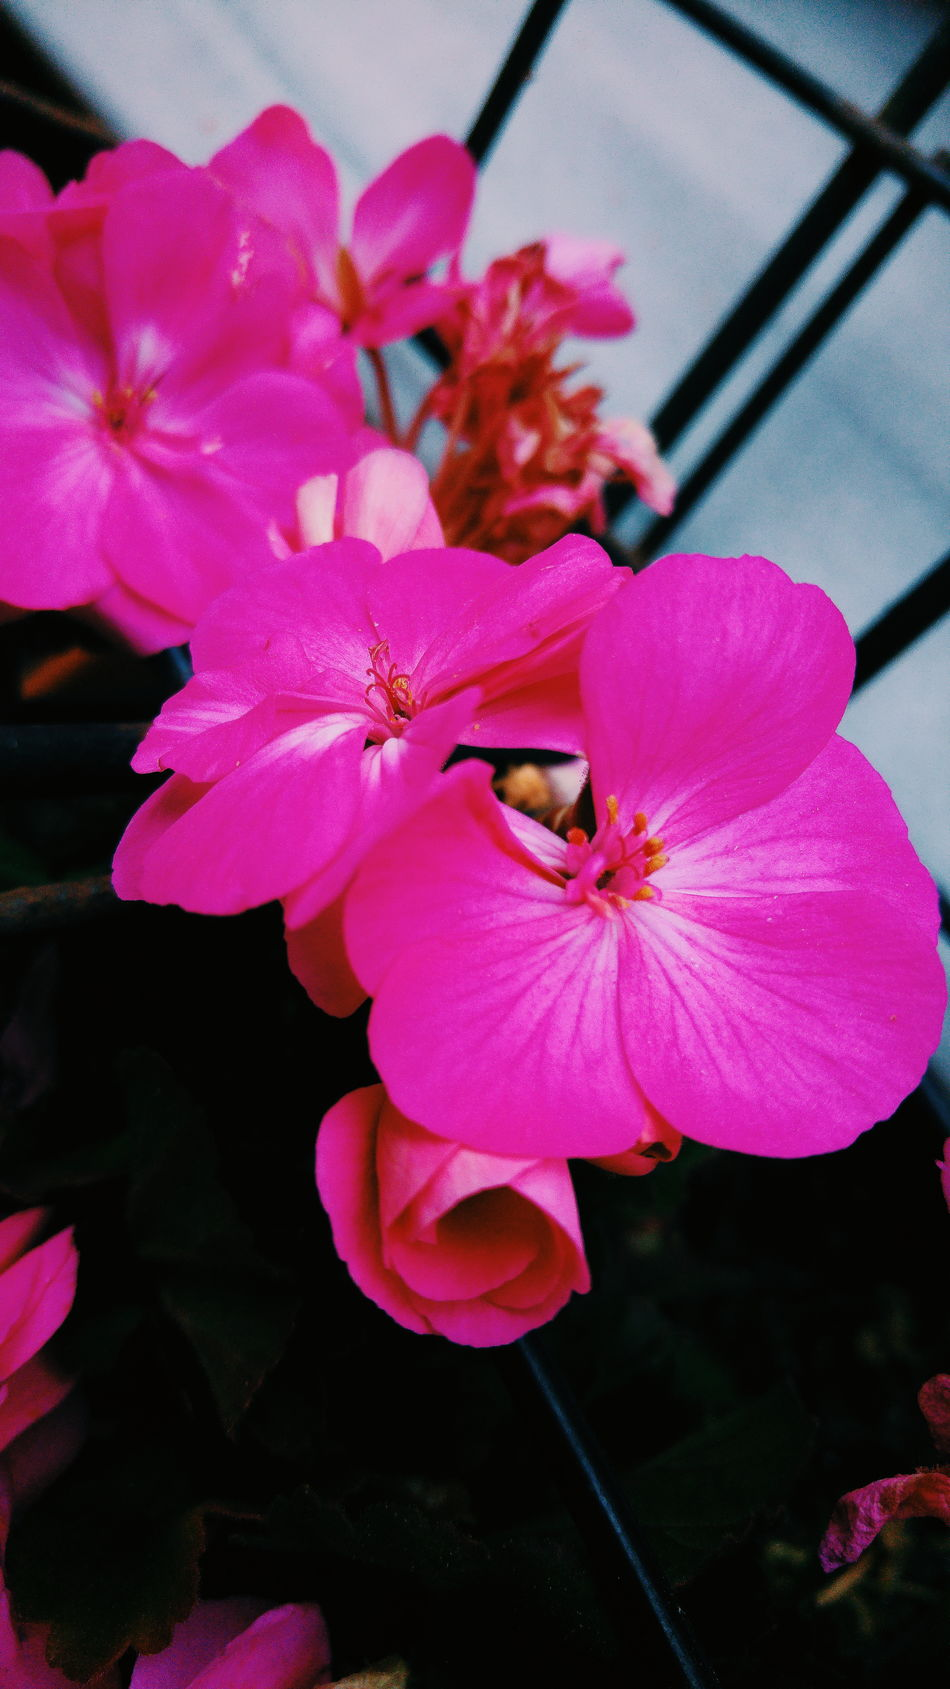 Flower Petal Flower Head Fragility Nature Pink Color Close-up Growth Freshness Orchid No People Beauty In Nature Pollen Day Outdoors Lg G4 Photography Lgg4camera Looking At Camera Built Structure Adults Only Architecture Transportation Green Mountain Highway